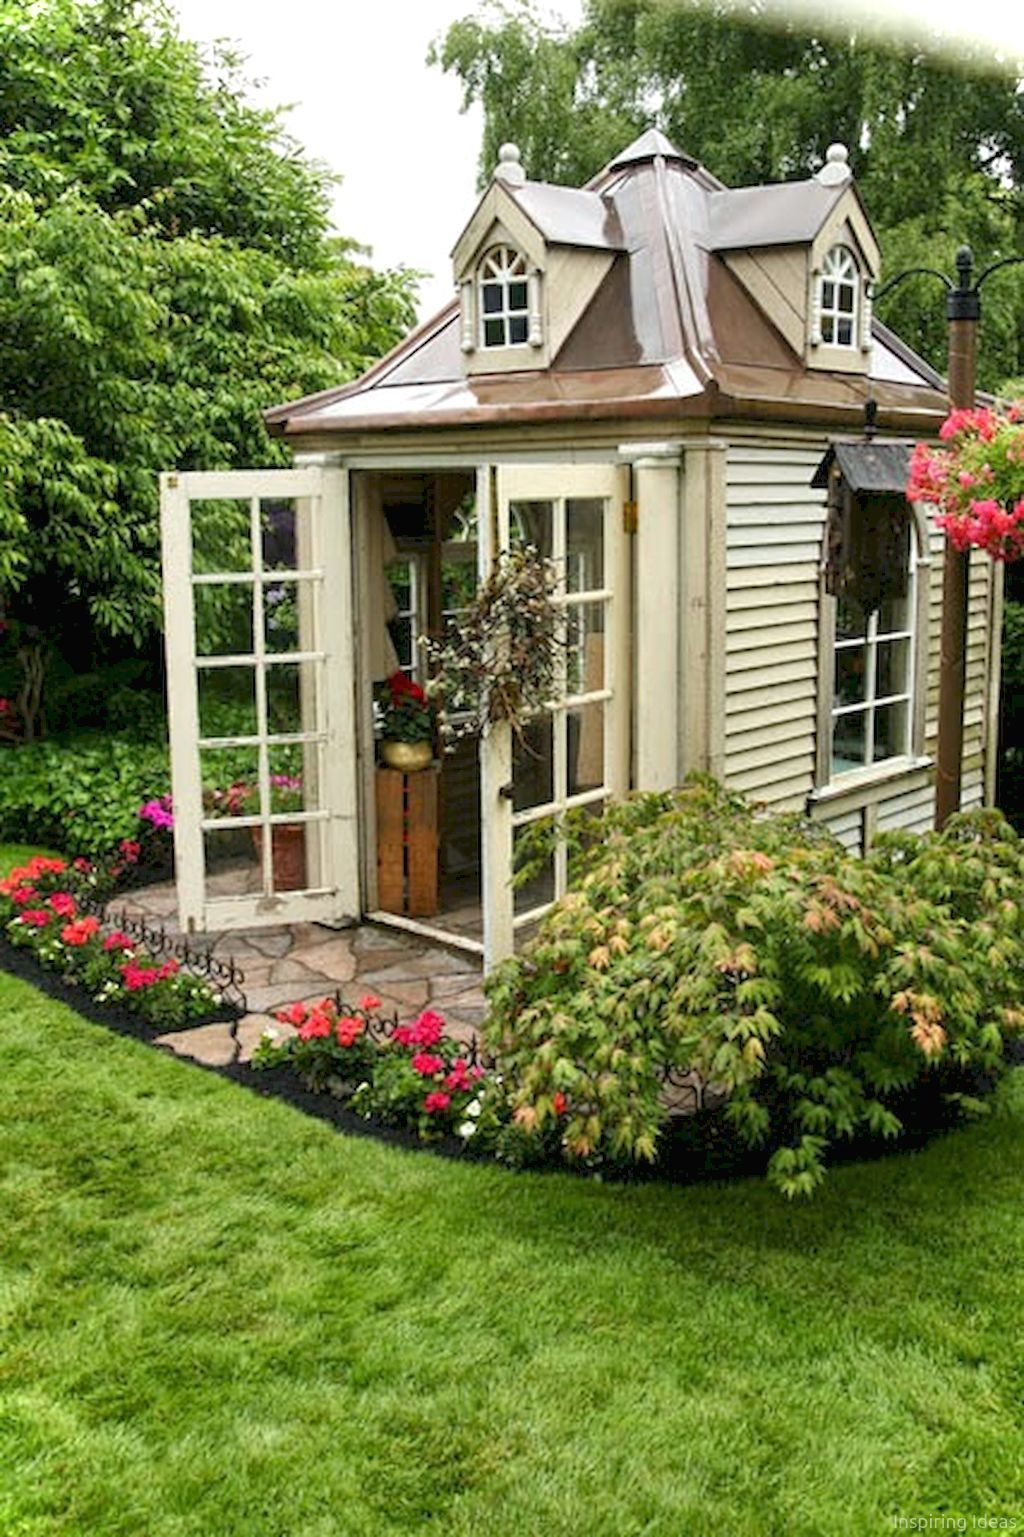 50 Clever Garden Shed Storage Ideas | Clever, Storage ideas and Storage